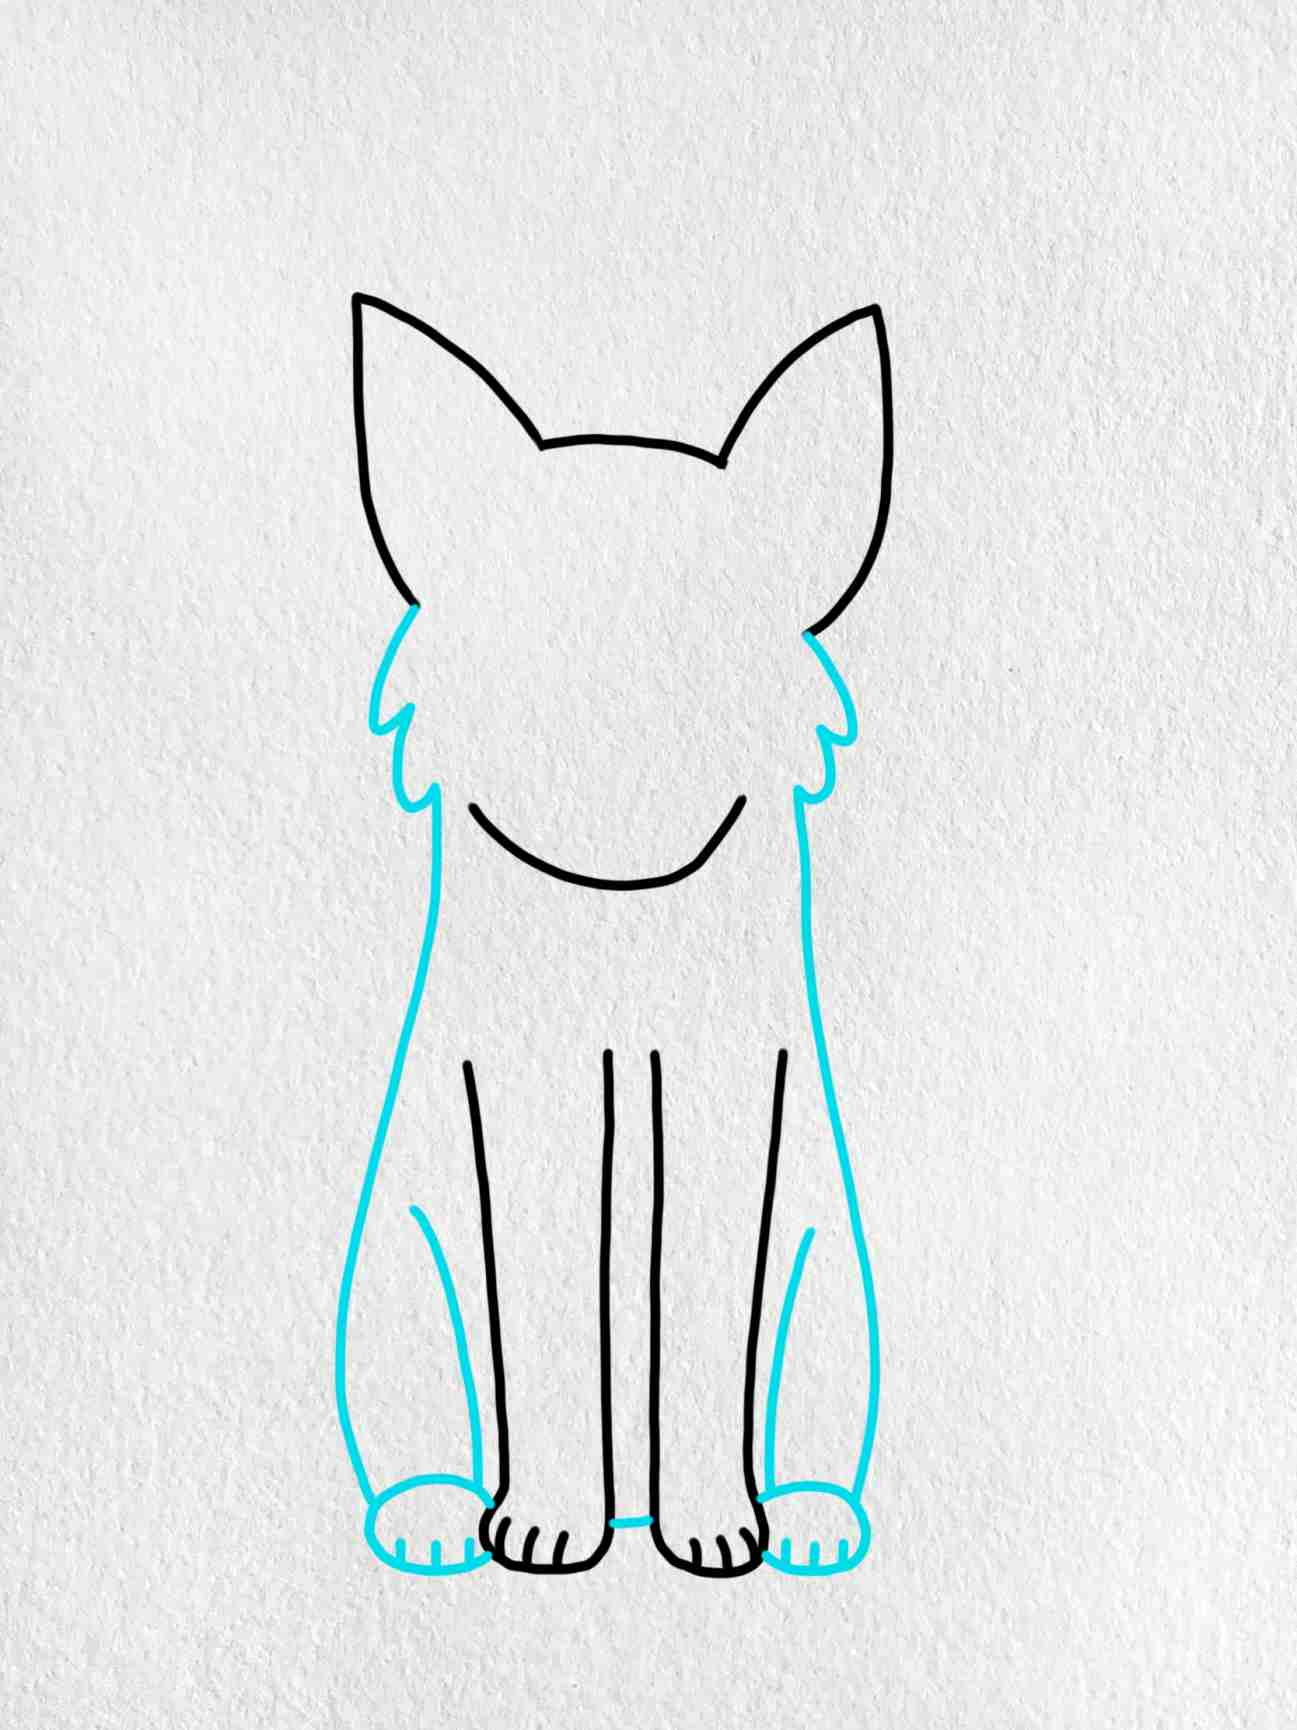 Easy Dog To Draw: Step 3